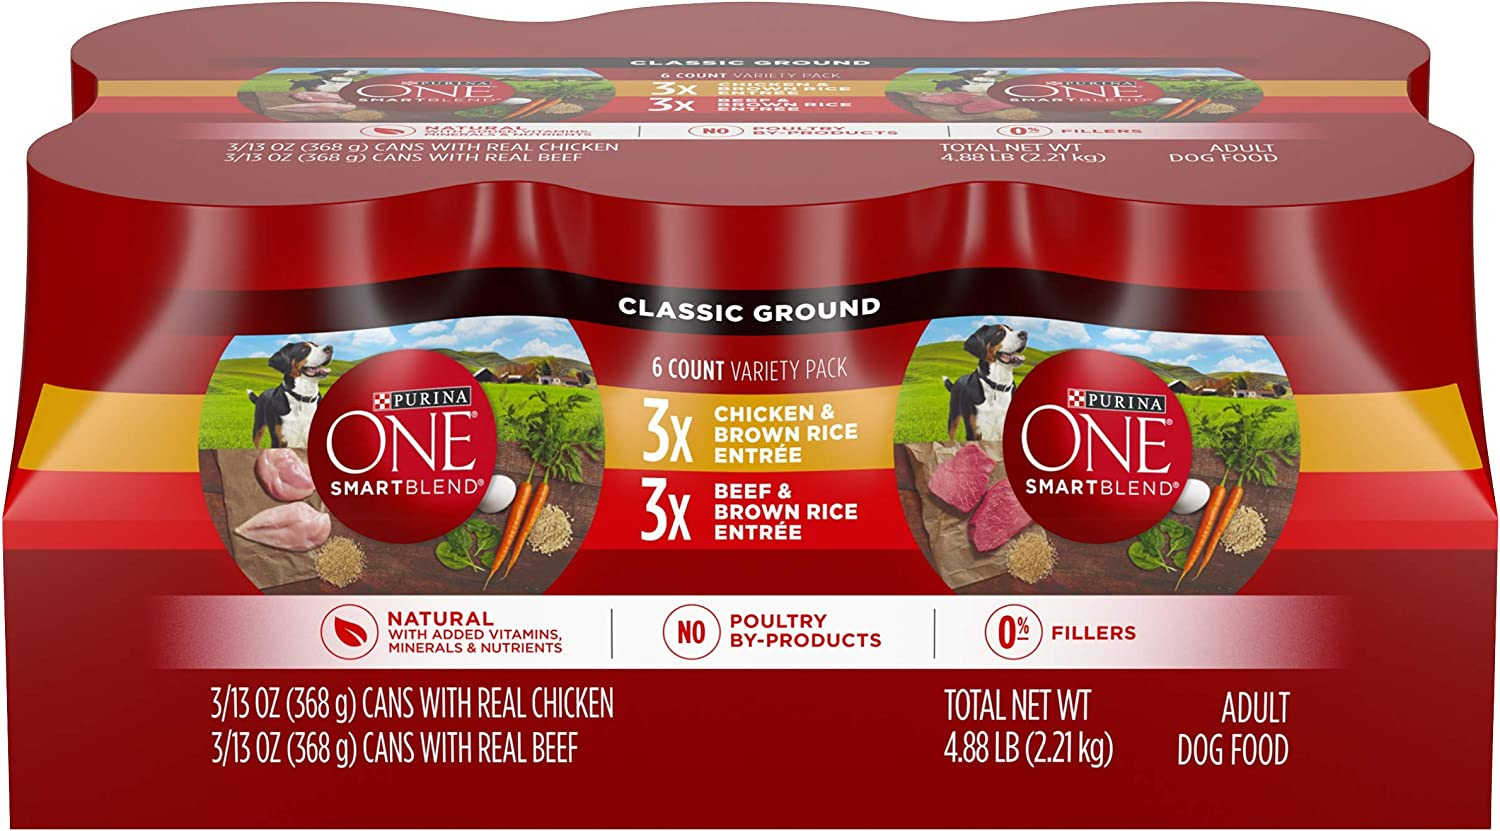 Purina ONE Natural Pate Wet Dog Food Variety Pack, SmartBlend Chicken Entree & Beef Entree - (6) 13 oz. Cans